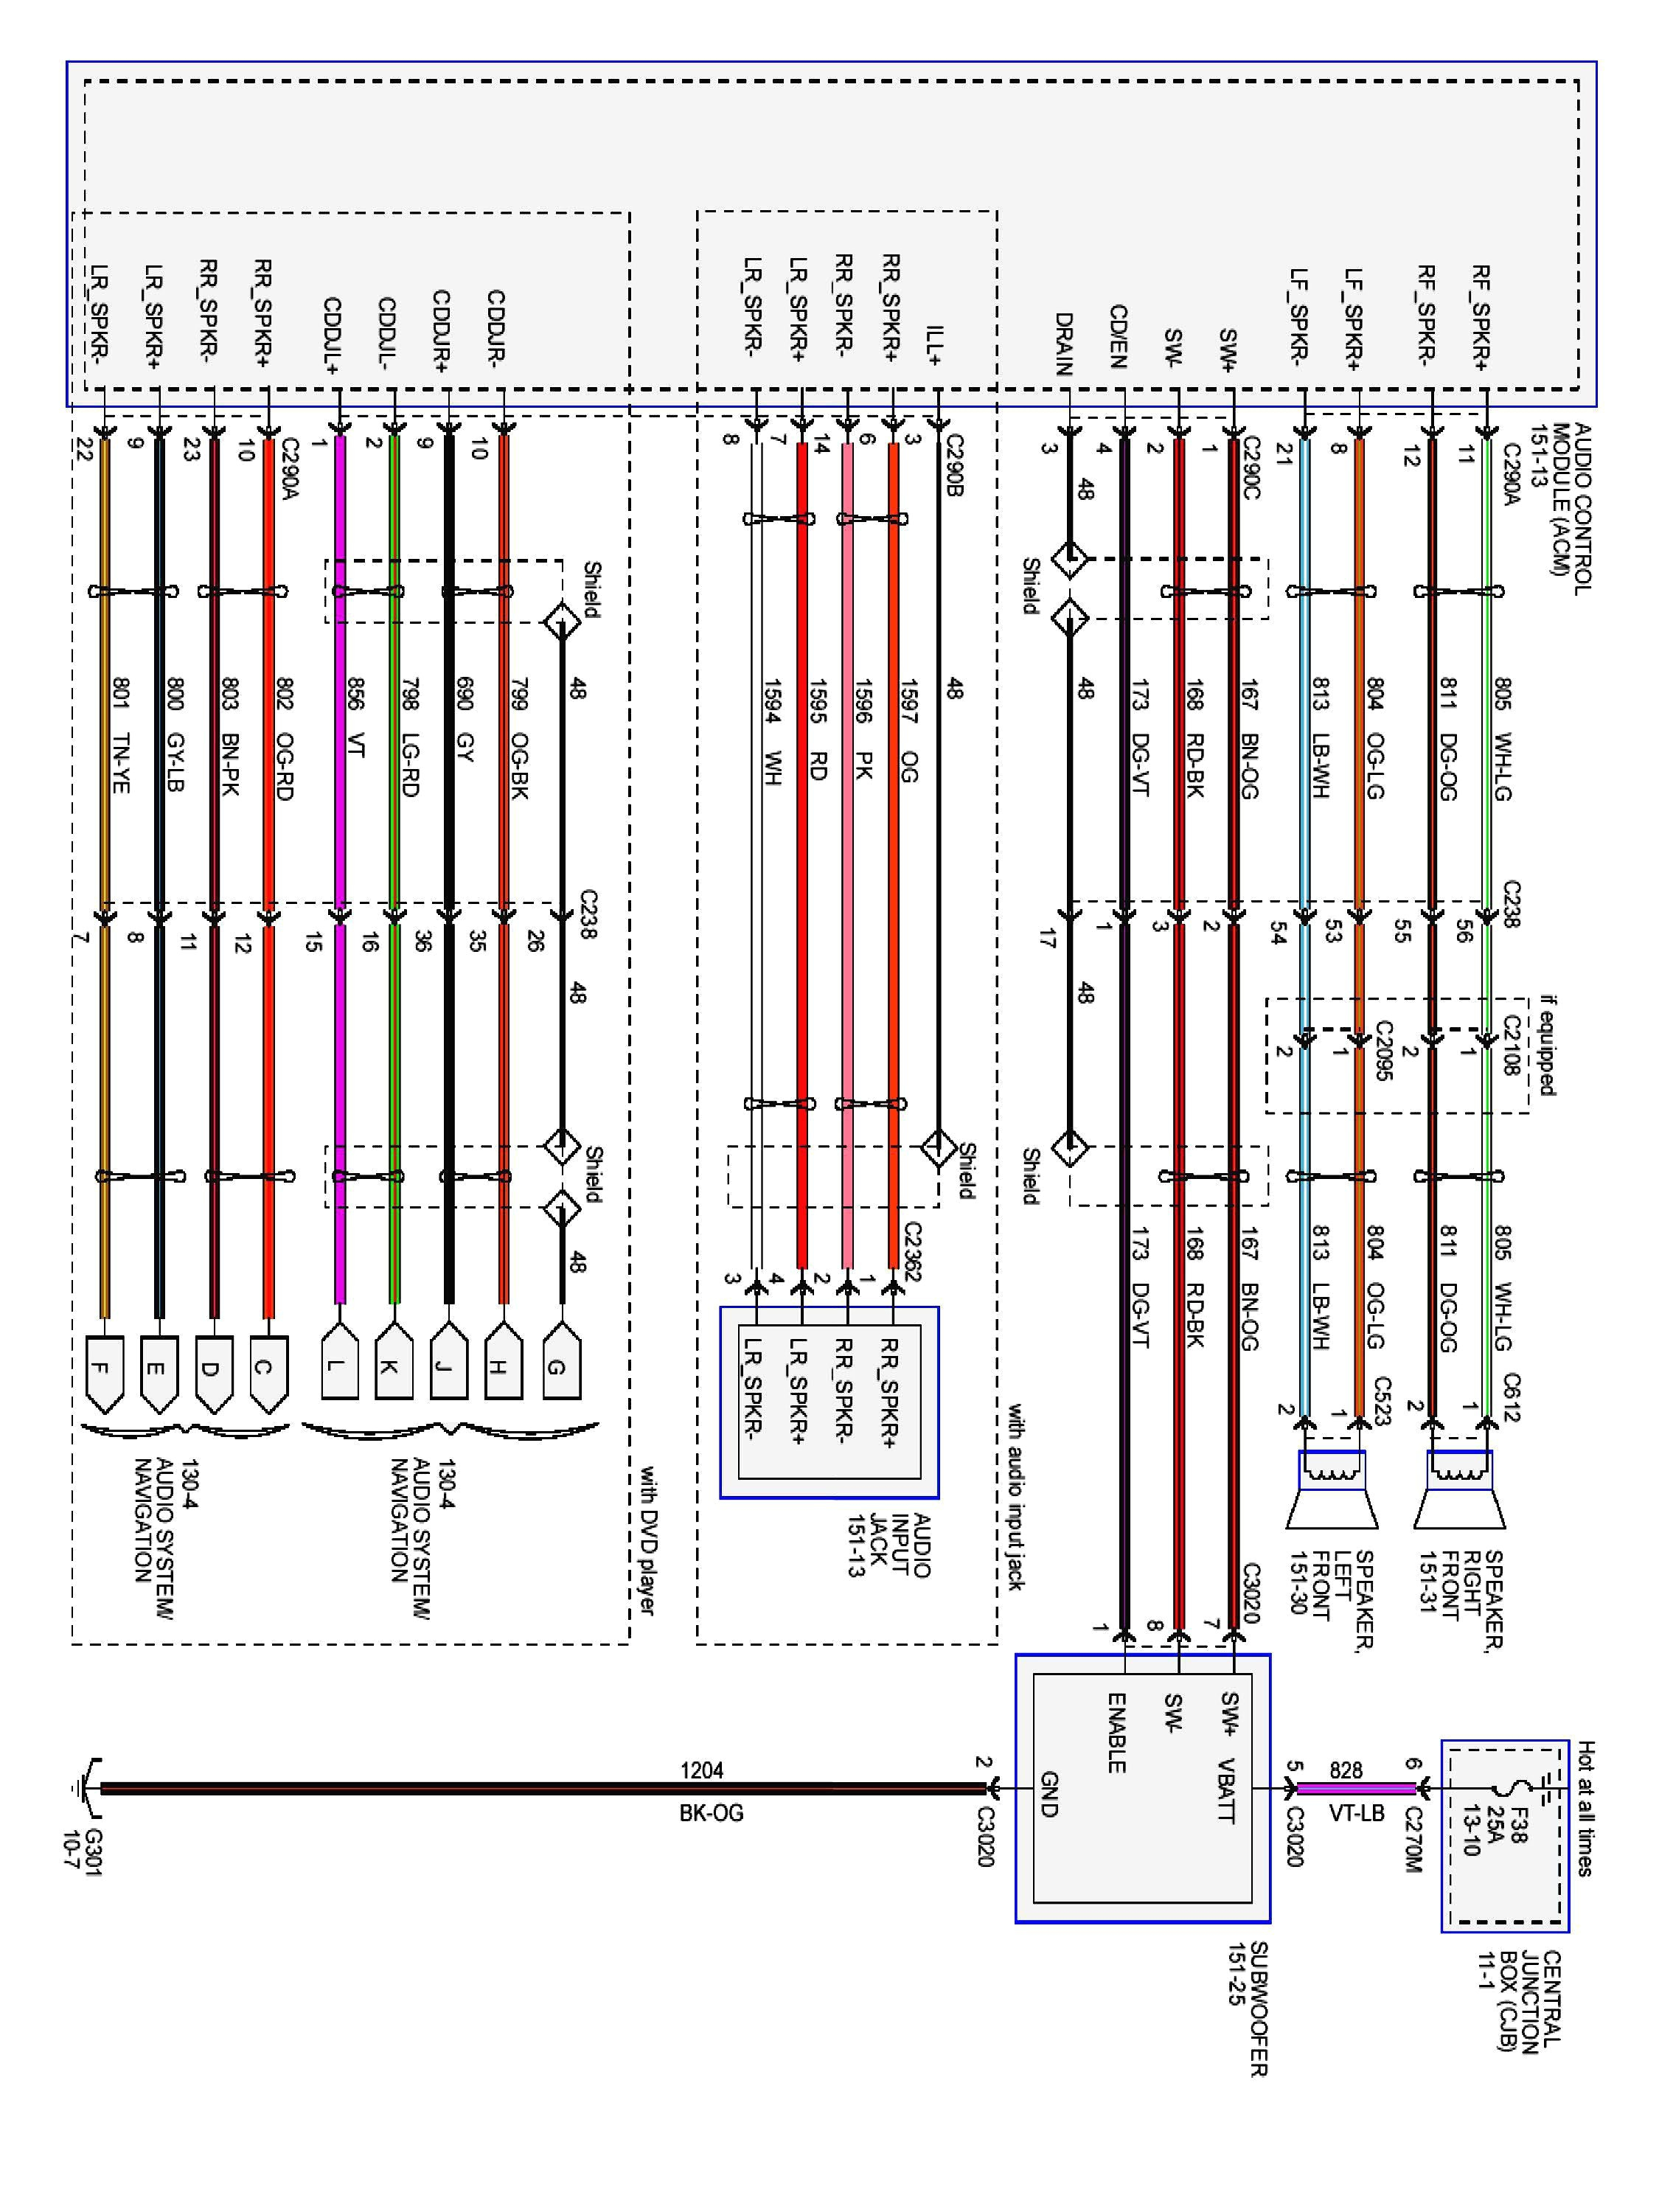 stereo wiring diagram for vz commodore wiring diagram home